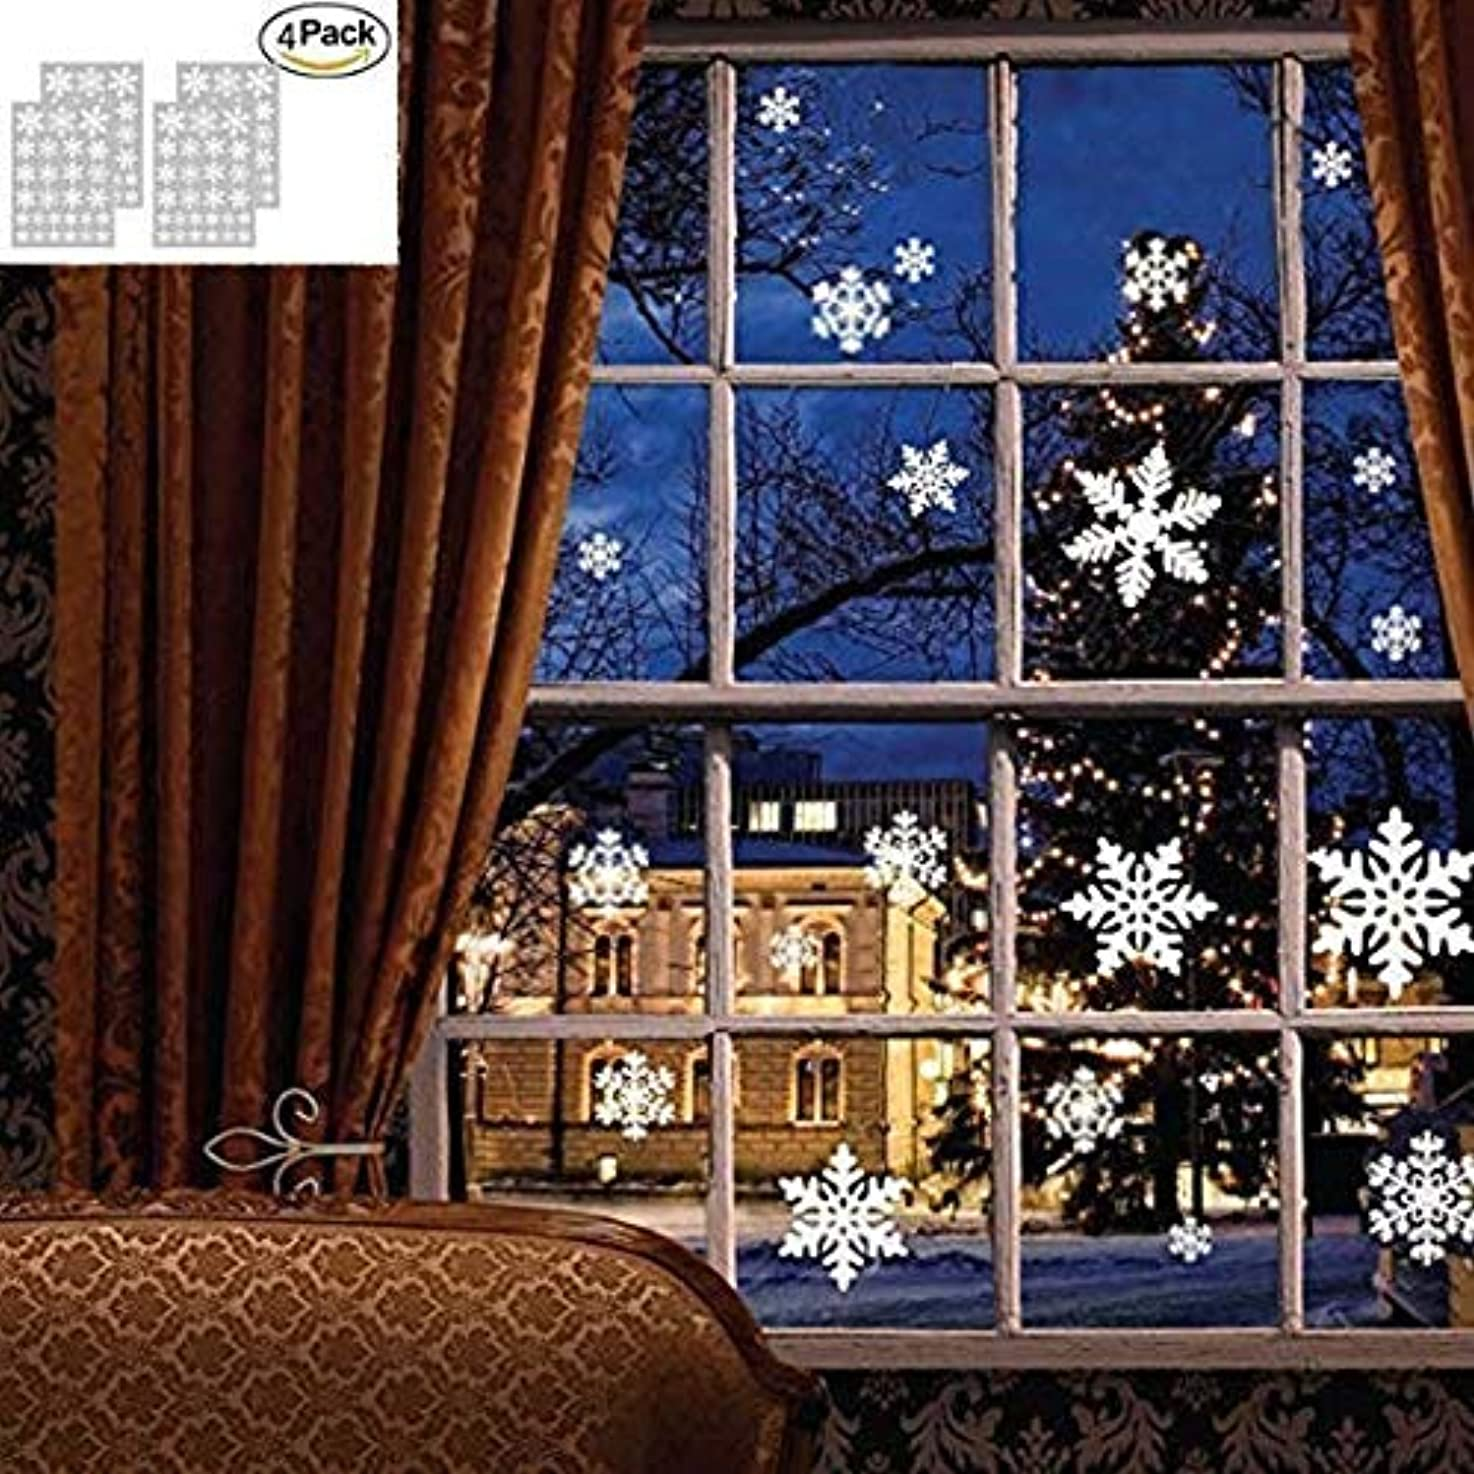 Snowflake Decorations Christmas Window Cling Stickers,Xmas Snowflake Ornaments for Living Room,Party,Wedding,4 Sheet 108 pcs (Snowflake Stickers)